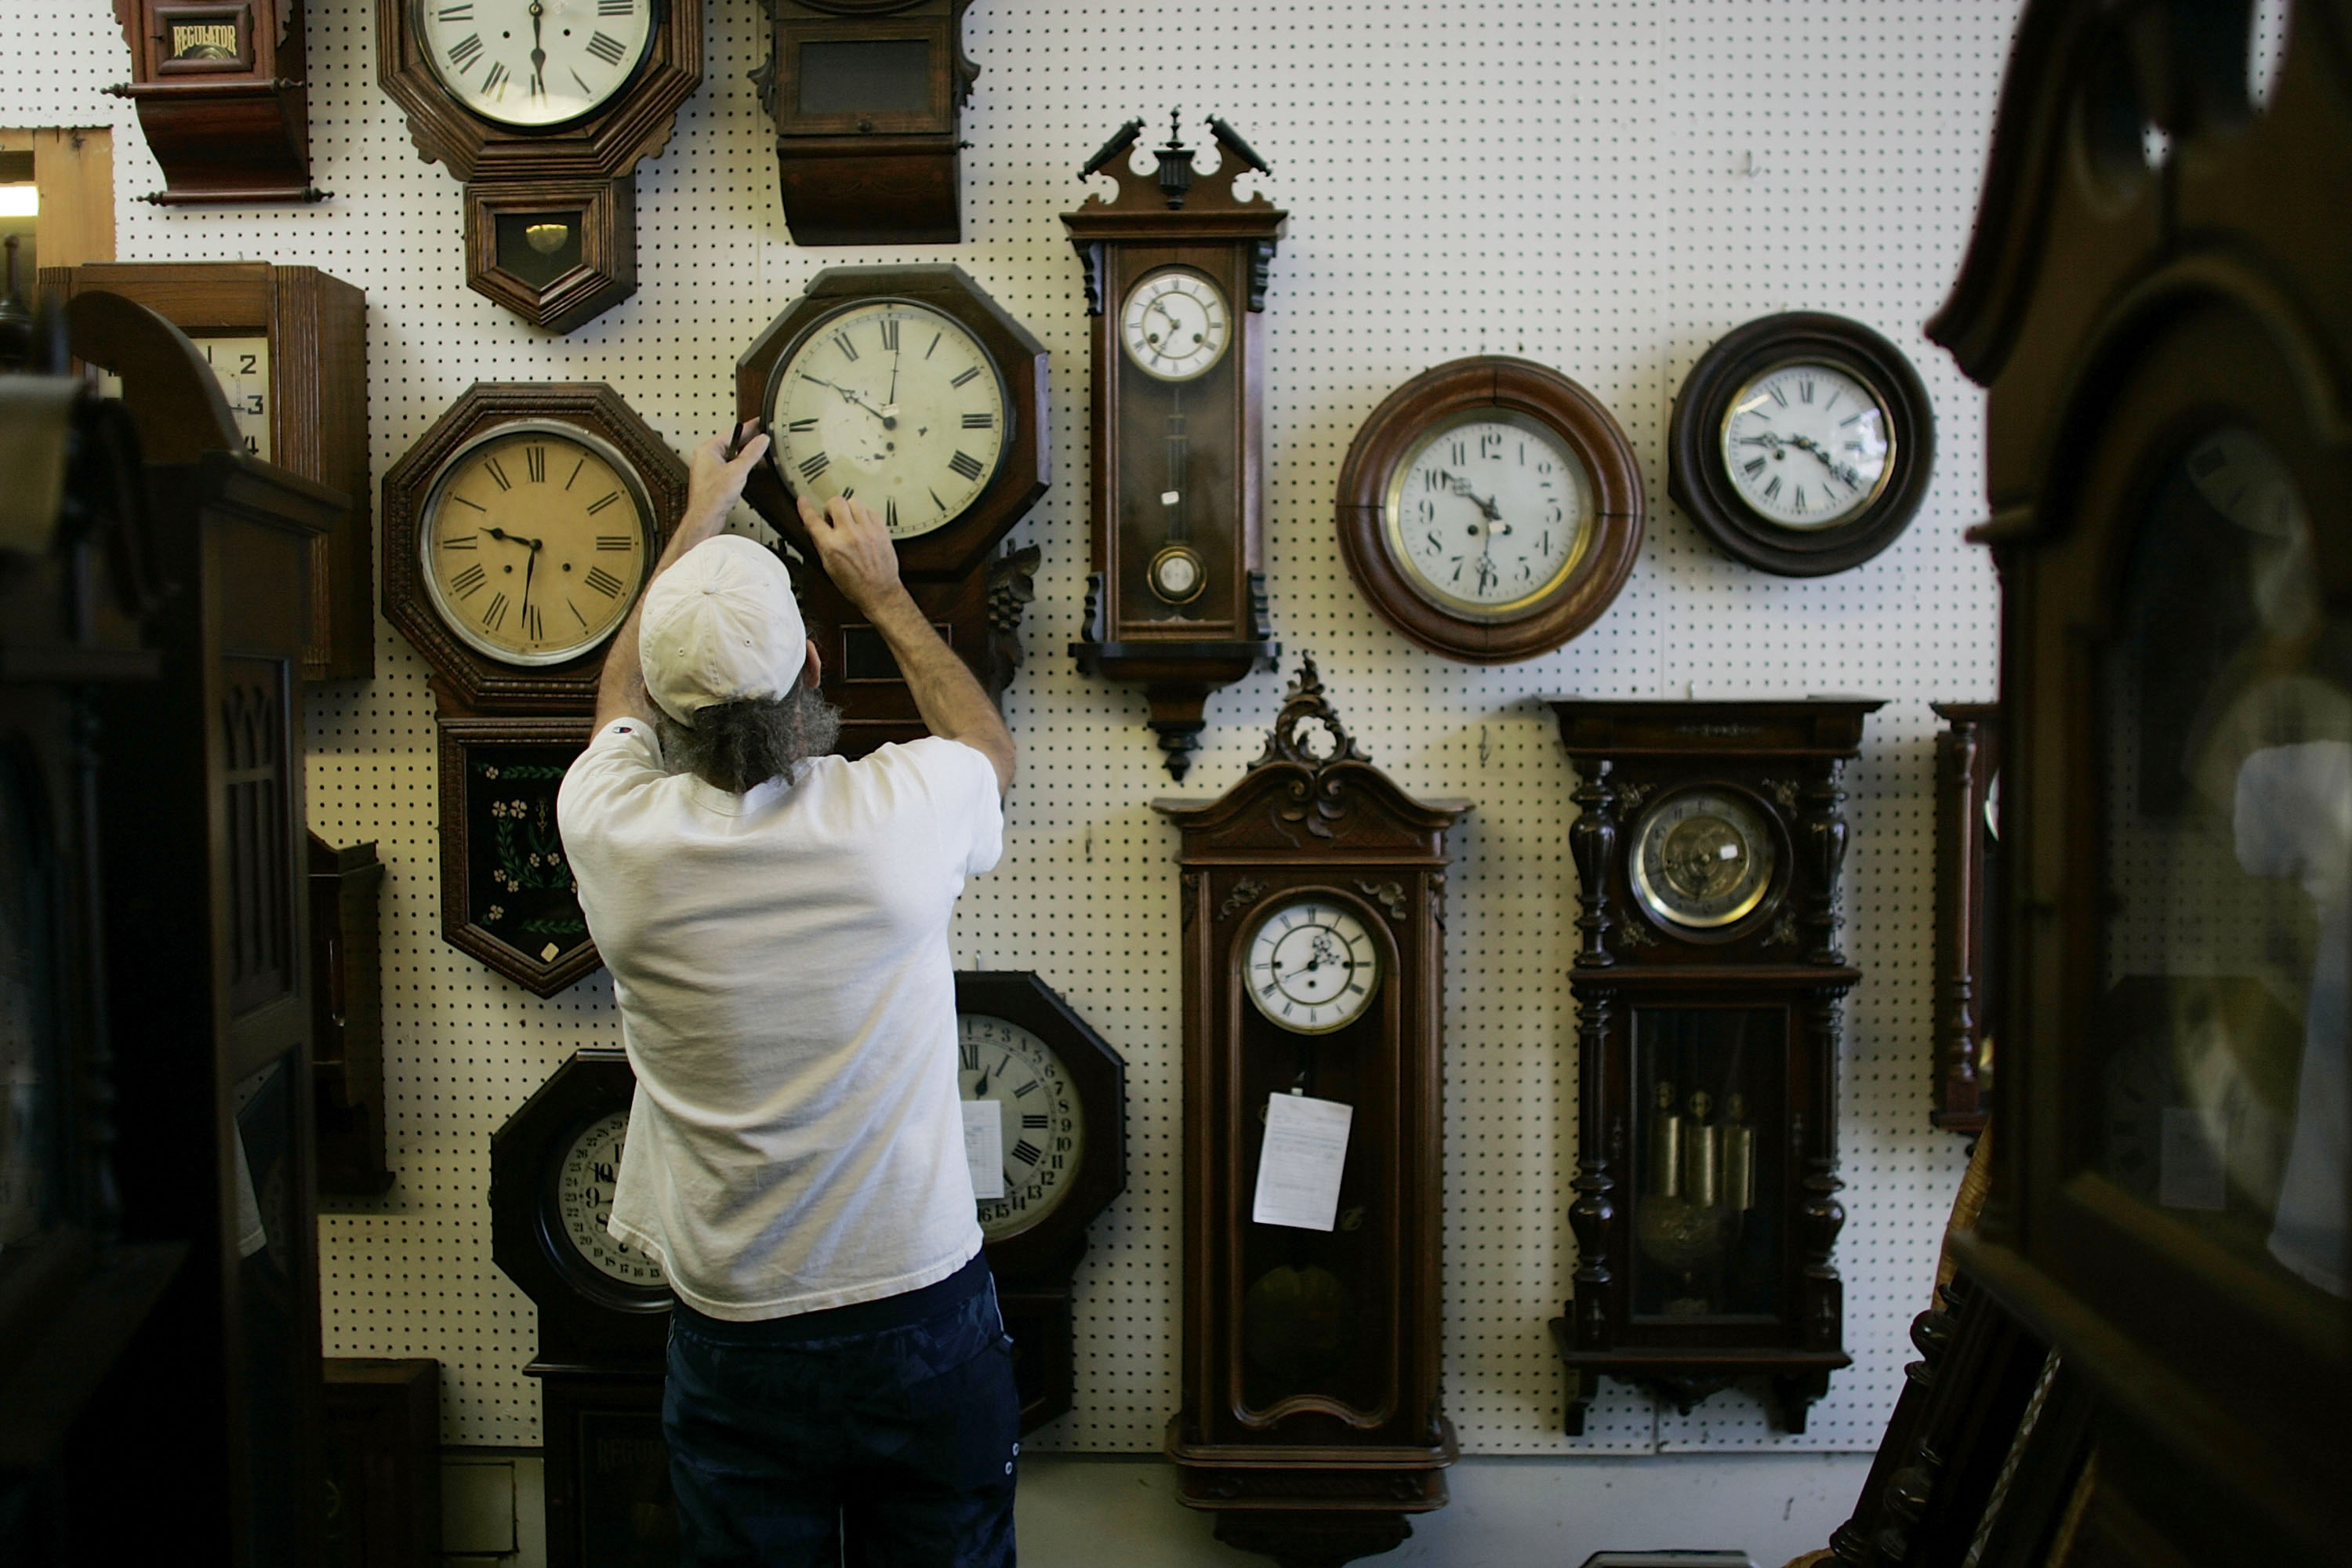 Mark Brown adjusts clocks on the wall at Brown?s Old Time Clock Shop March 6, 2007 in Plantation, Florida. This year day light savings time happens three weeks early and some people fear that it could cause some computer and gadget glitches.